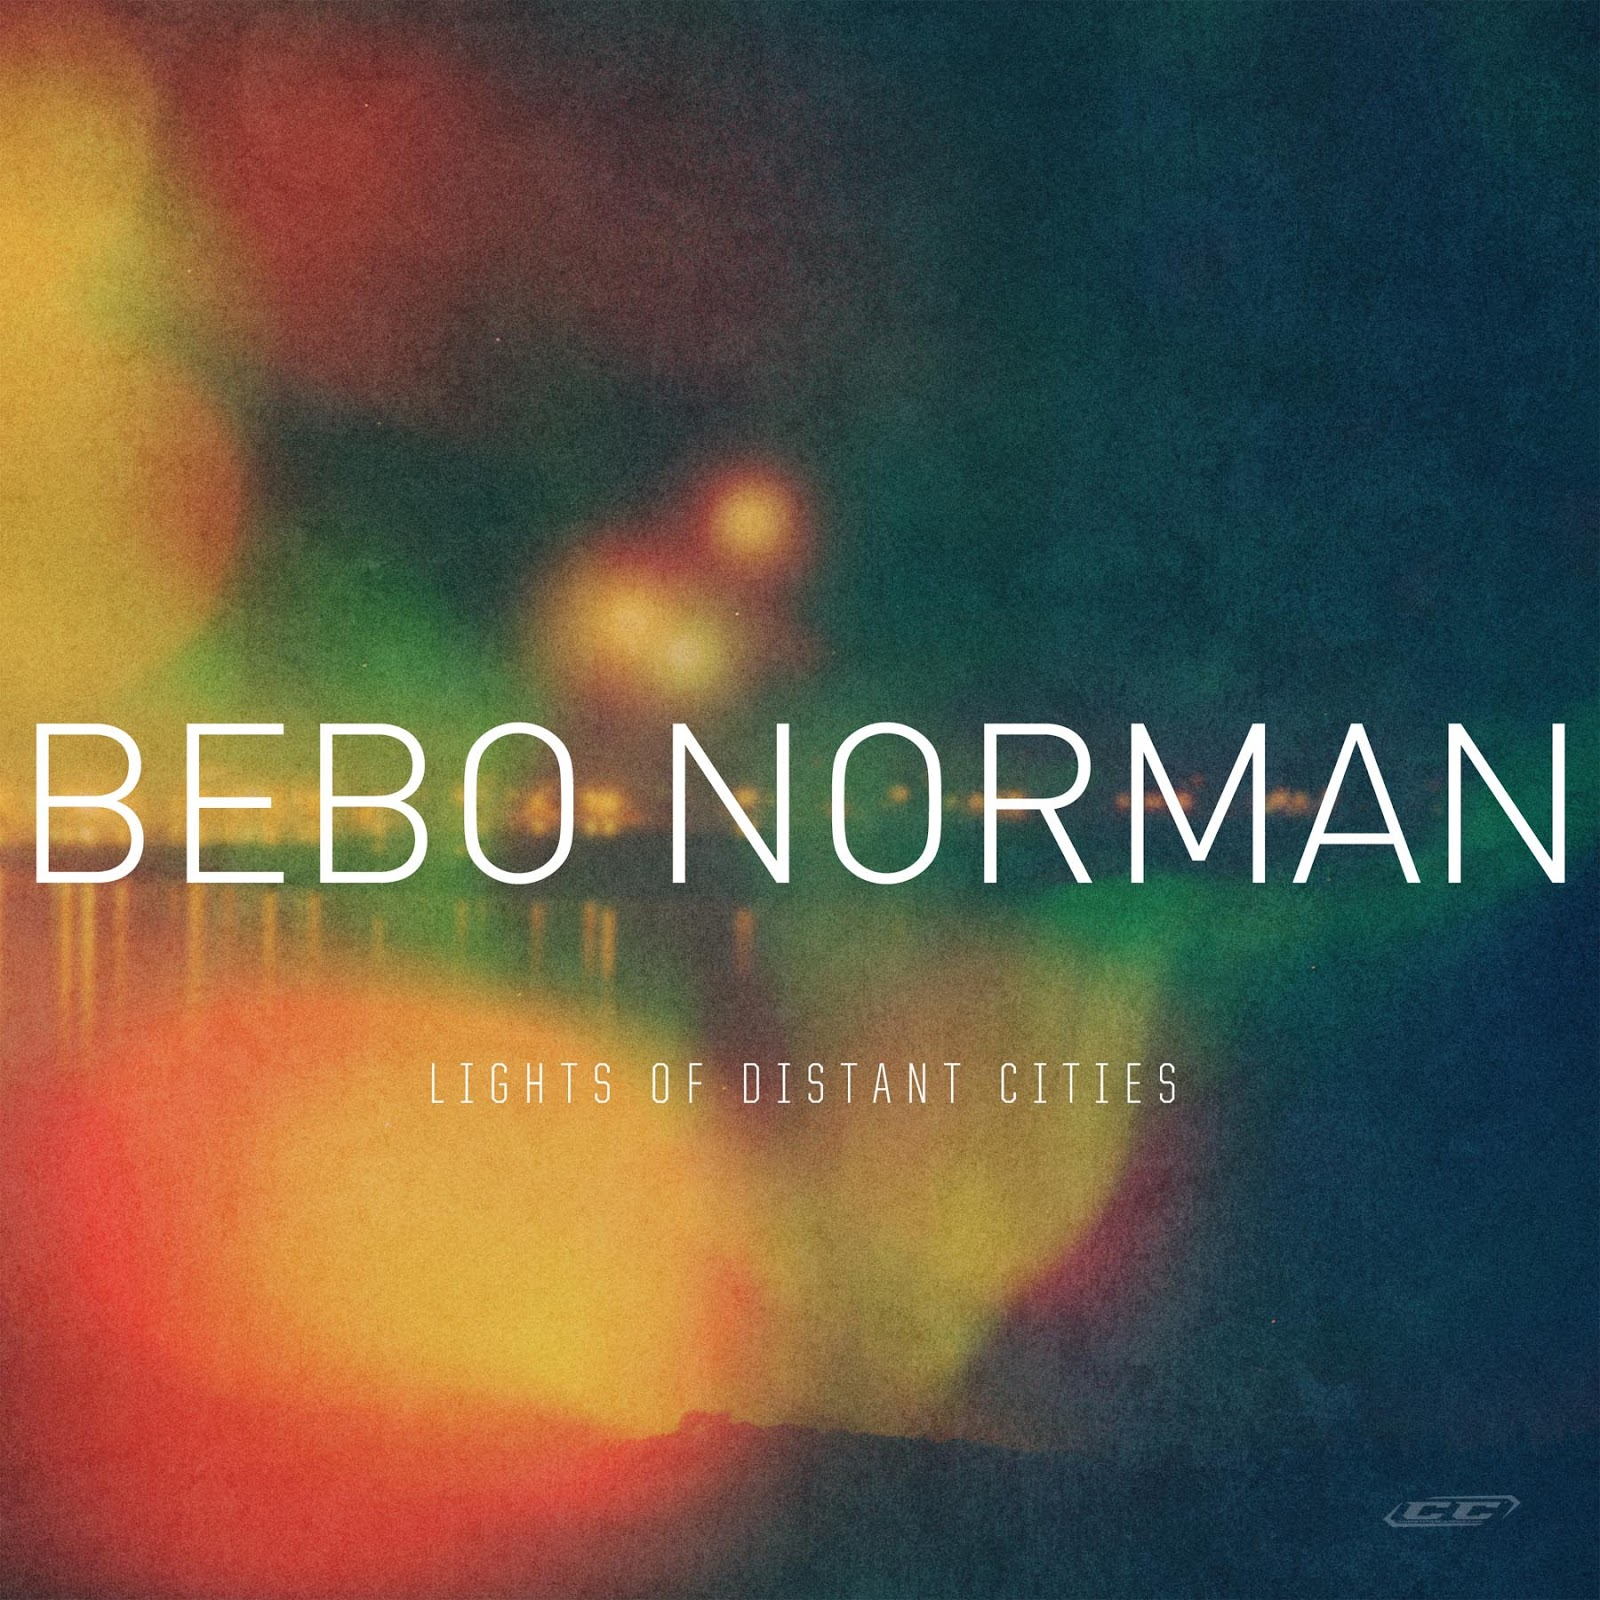 Bebo Norman - Lights of Distant Cities 2012 English Christian Album Download